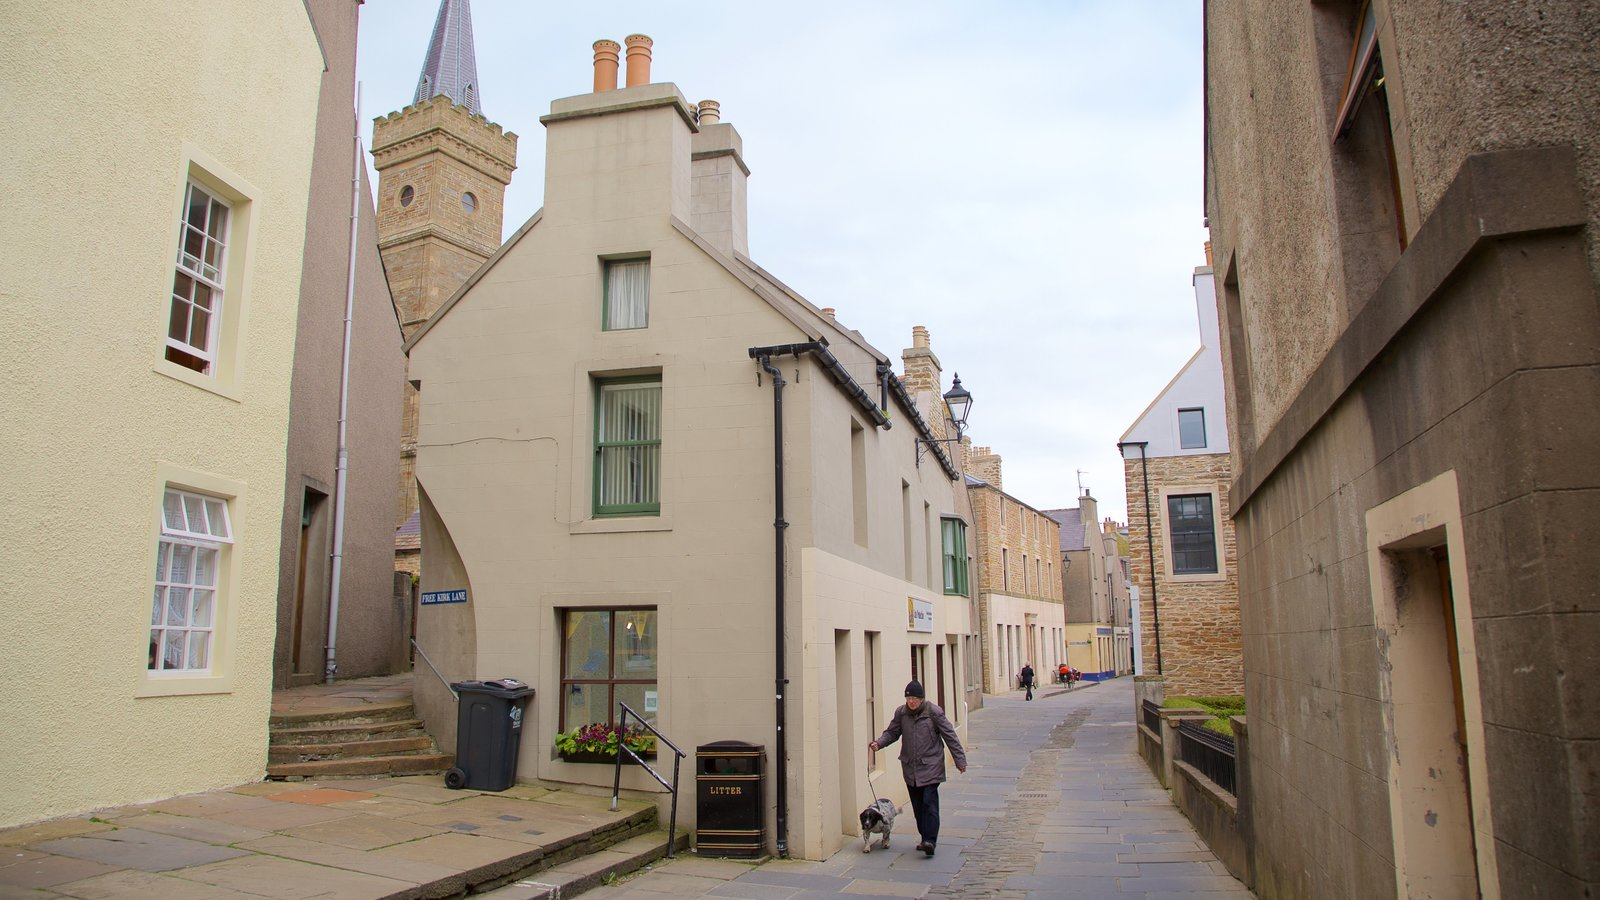 Stromness showing street scenes as well as an individual male